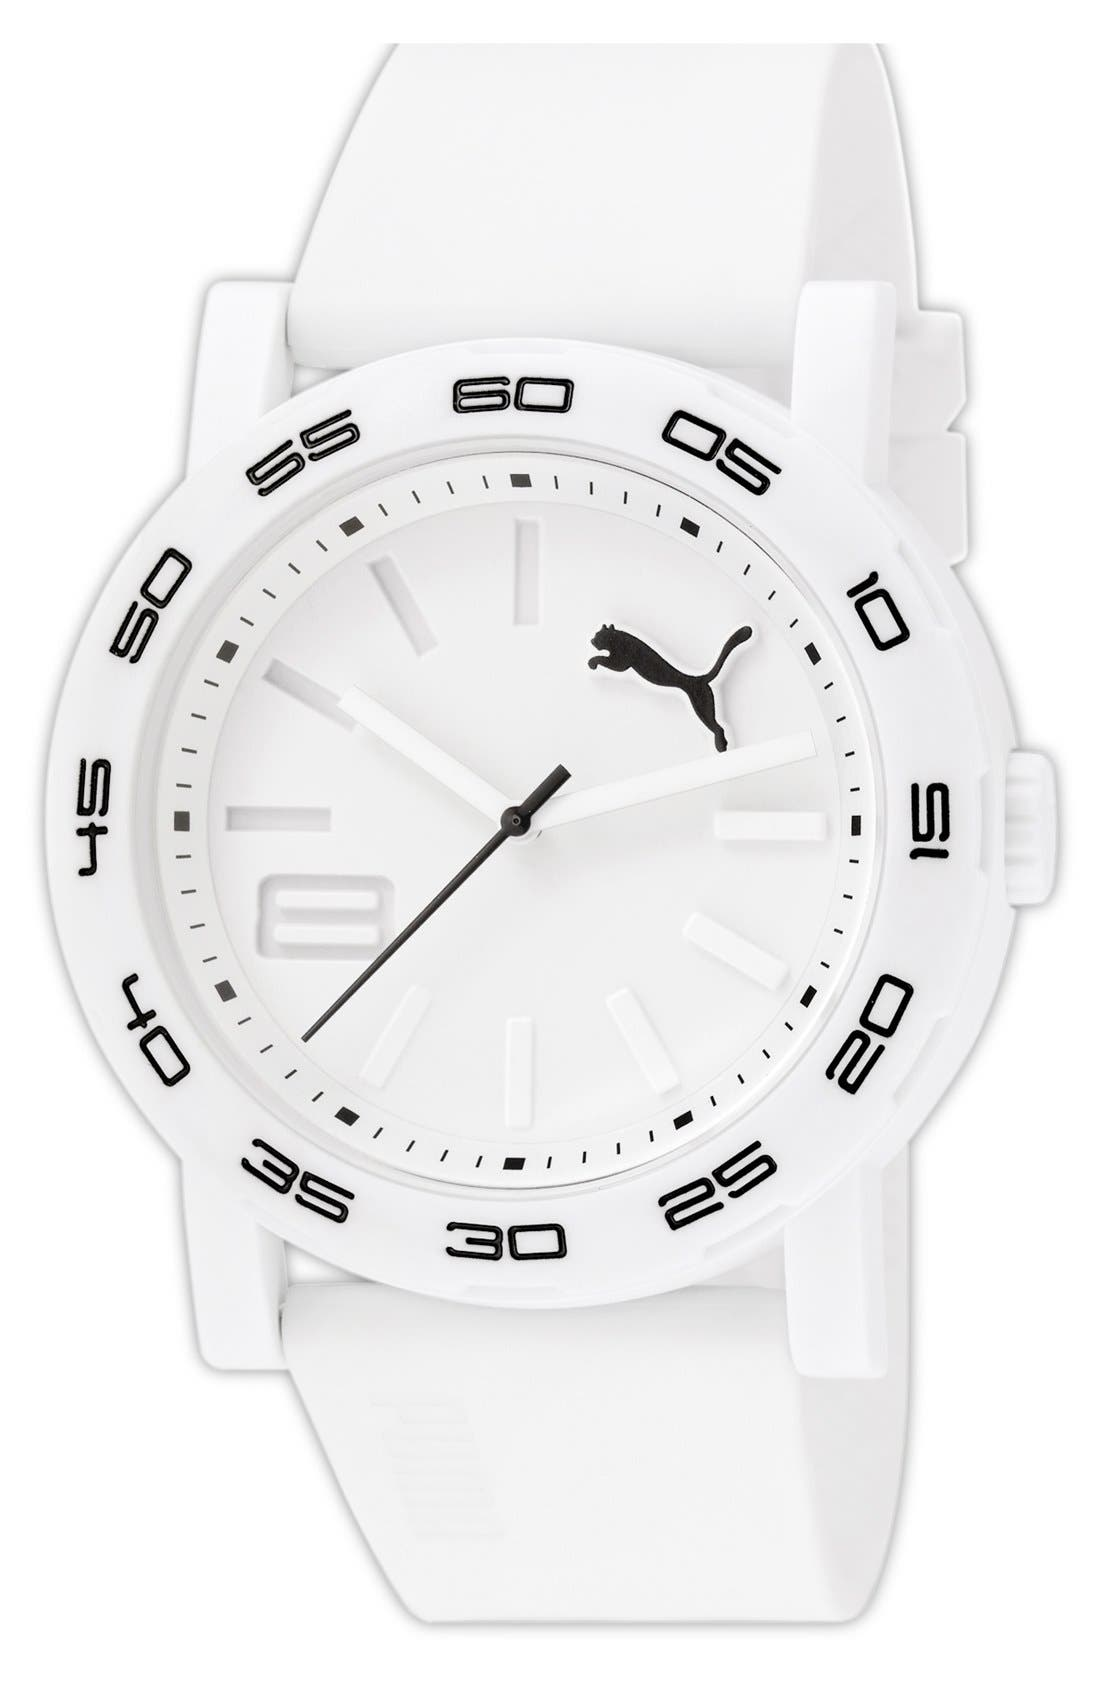 Alternate Image 1 Selected - PUMA 'Move' Round Watch, 45mm